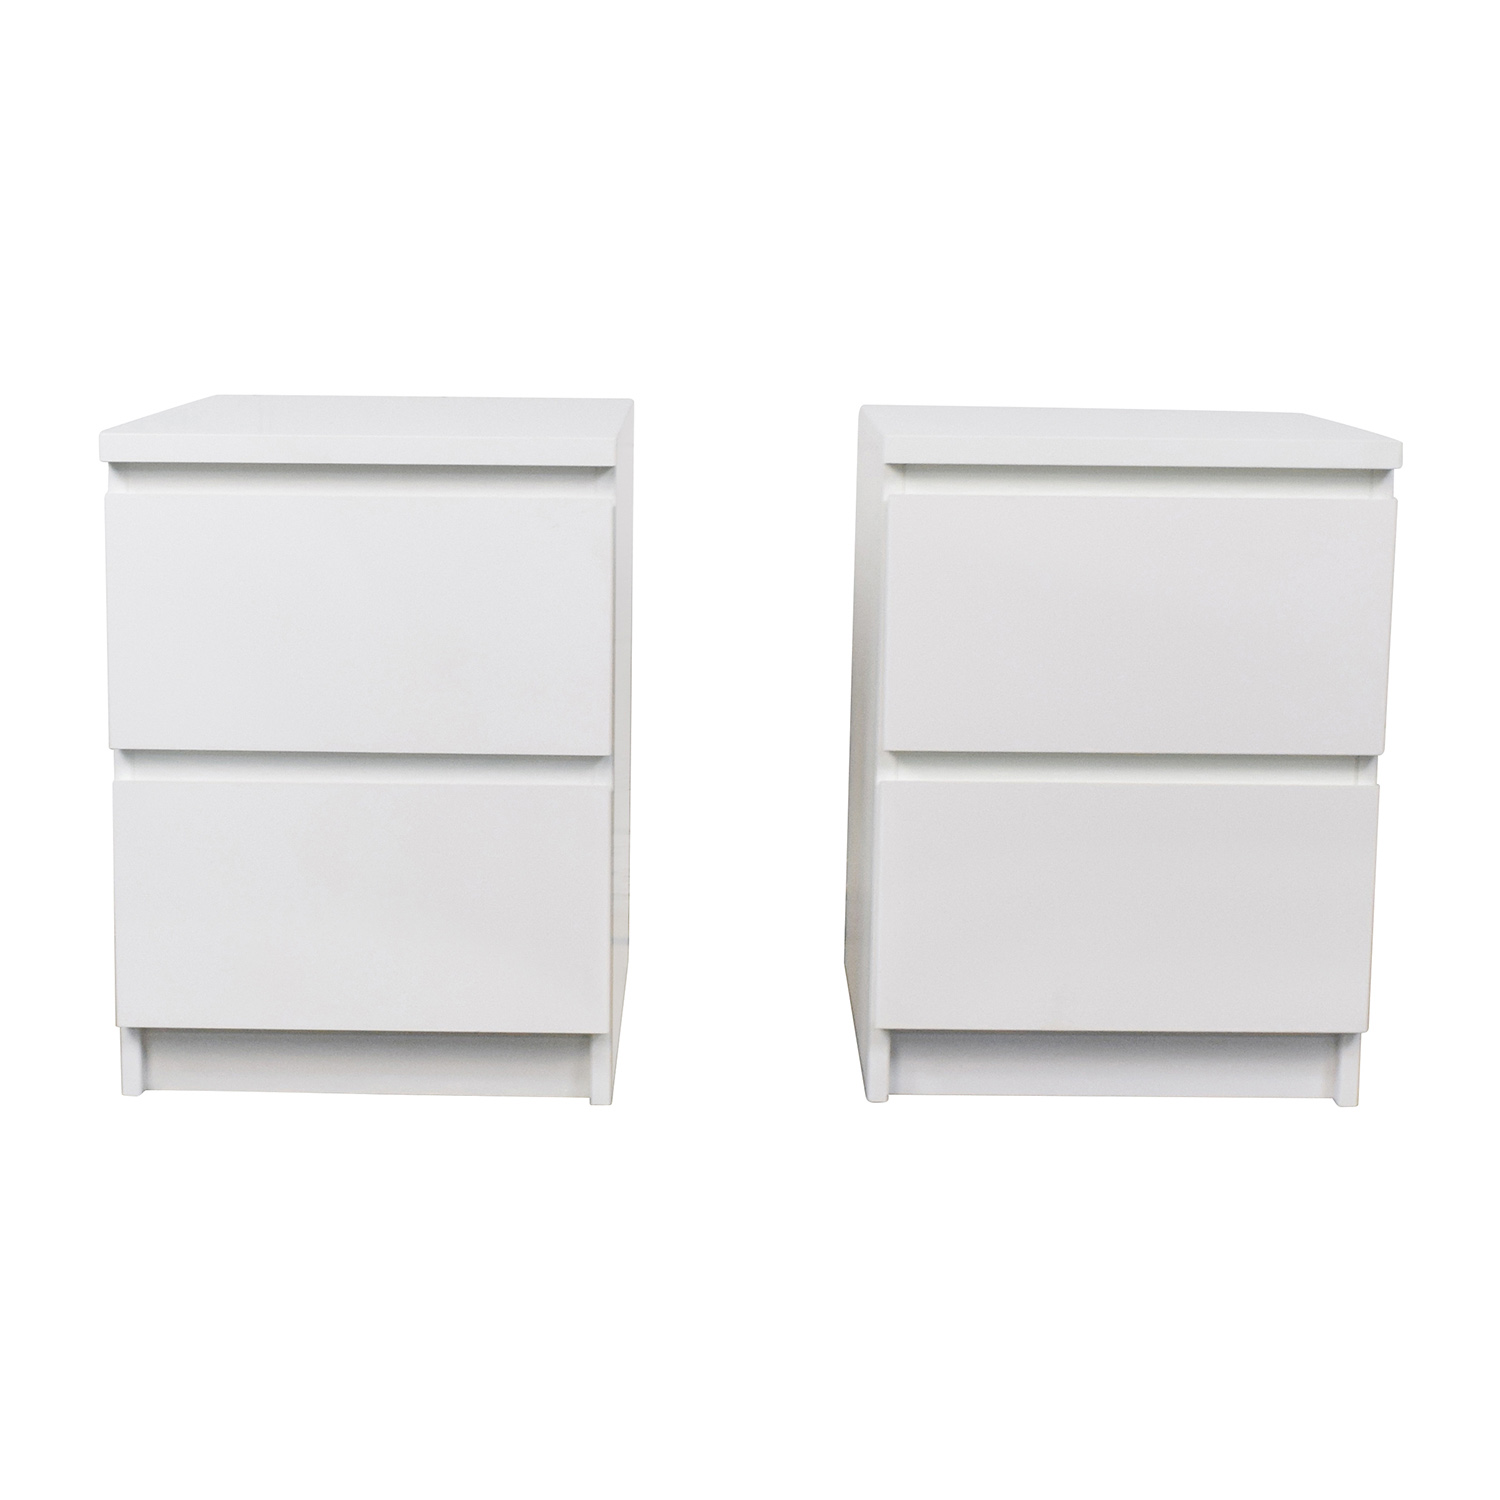 shop ikea malm white two drawer end tables ikea tables - End Tables Ikea